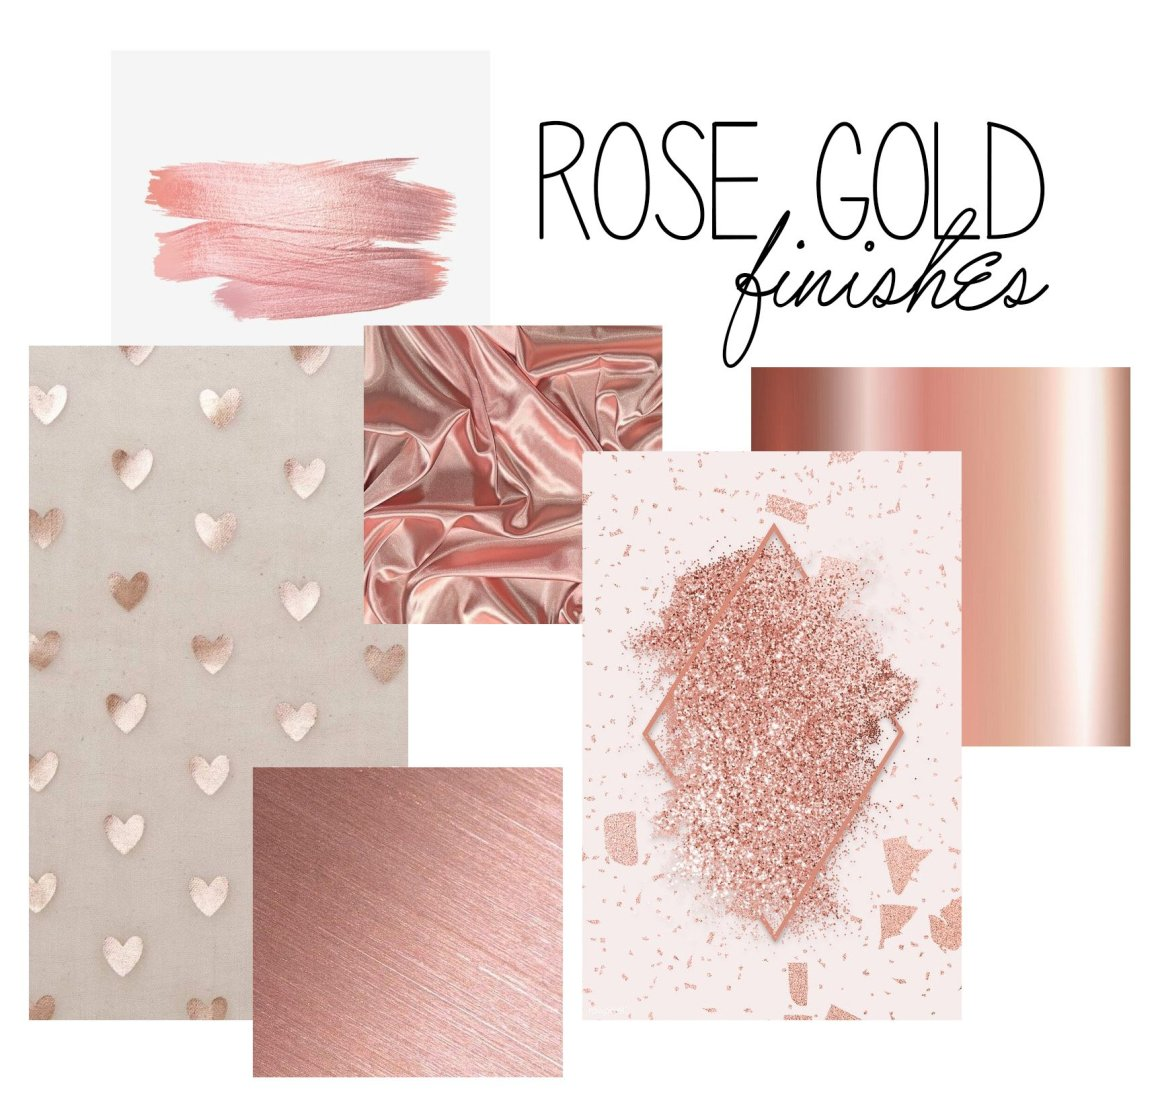 Rose Gold Finishes